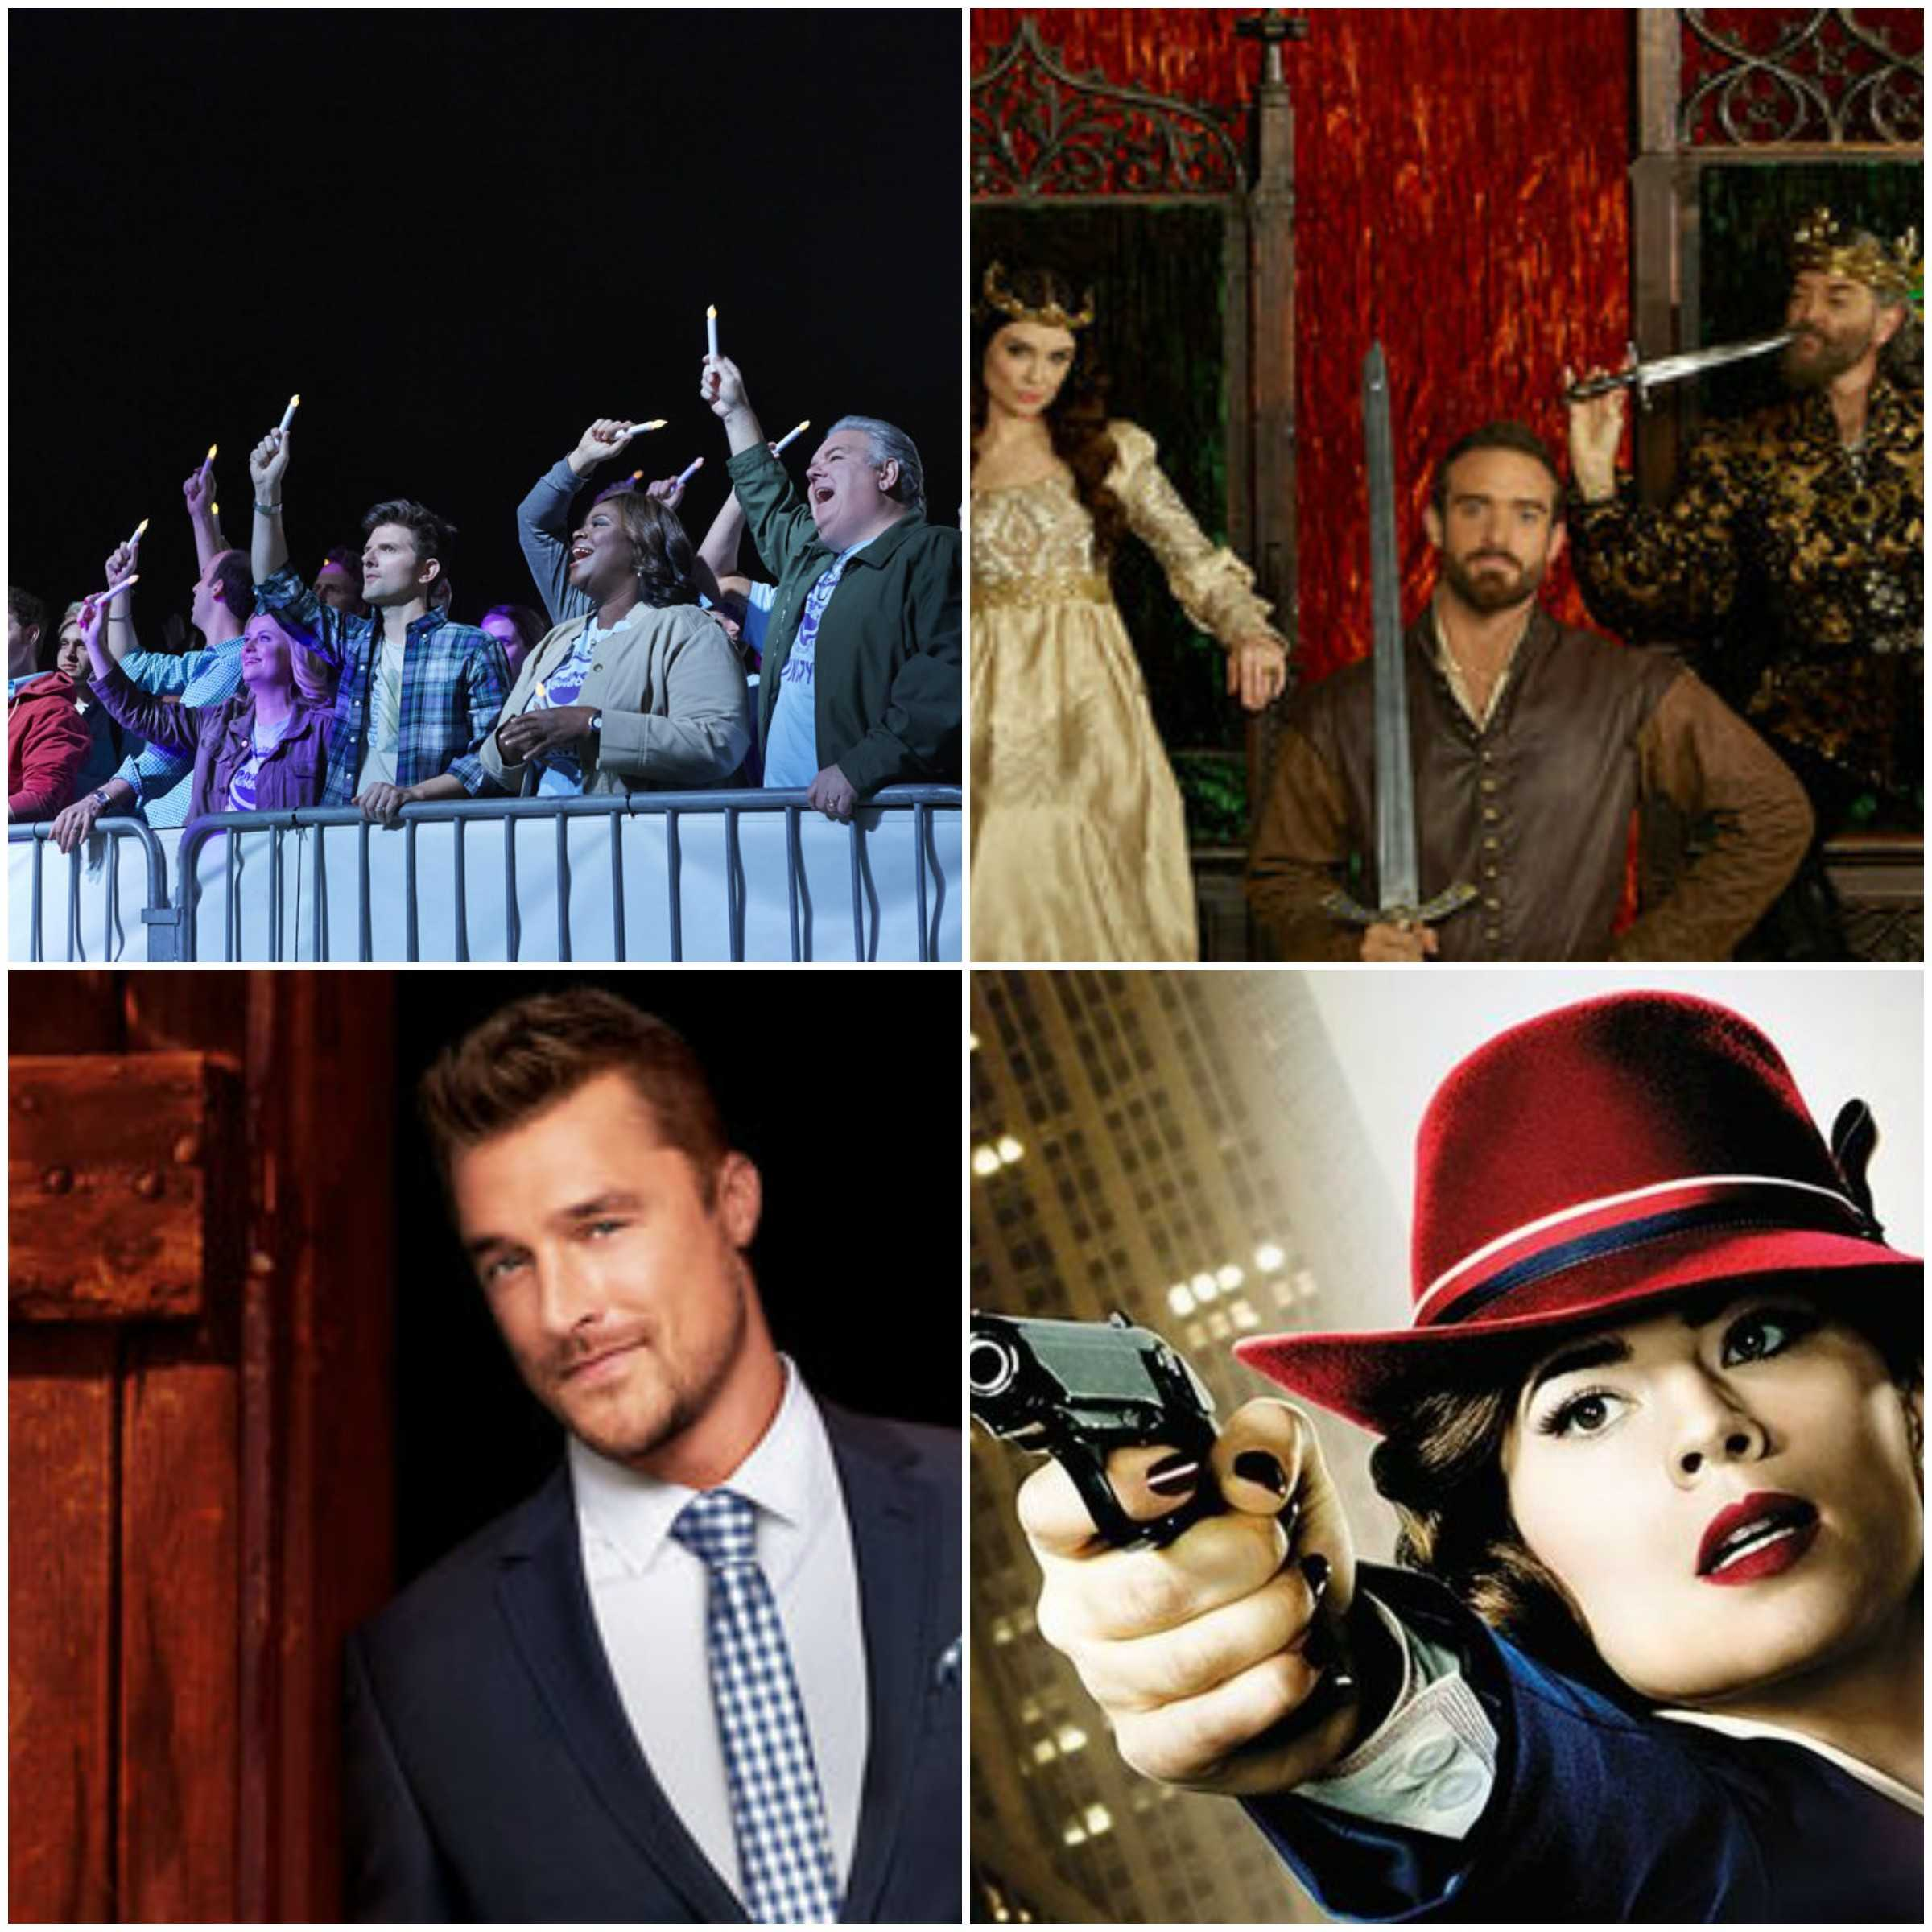 These four photos show the following upcoming winter tv shows. From left to right we have Parks and Recreations, Galavant, The Bachelor, and Agent Carter. Photos are courtesy of ABC: American Broadcasting Company and NBC universal.